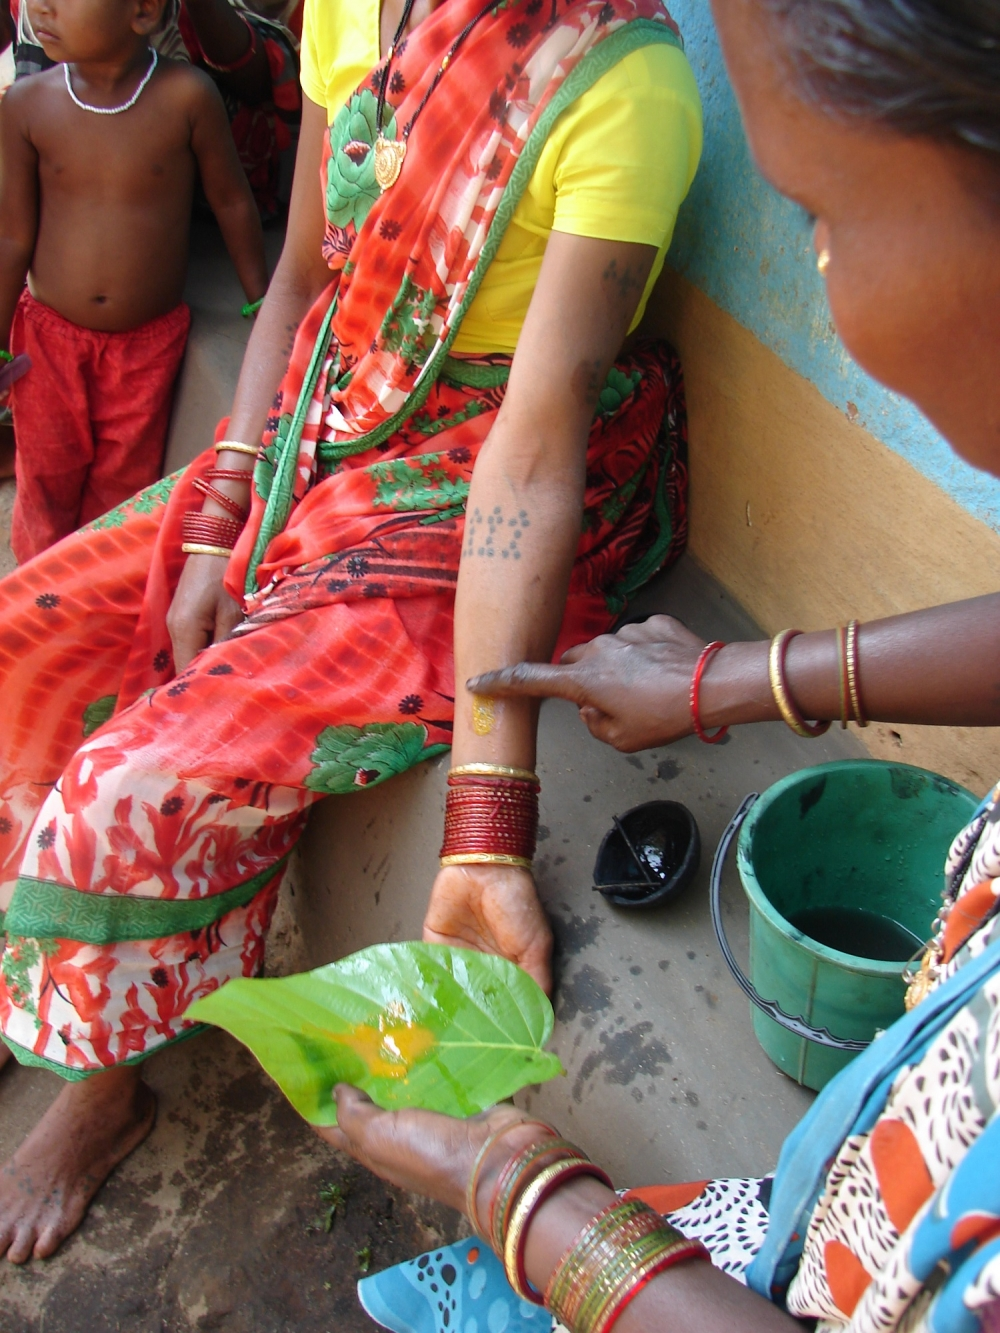 Turmeric paste is applied to the newly etched godna